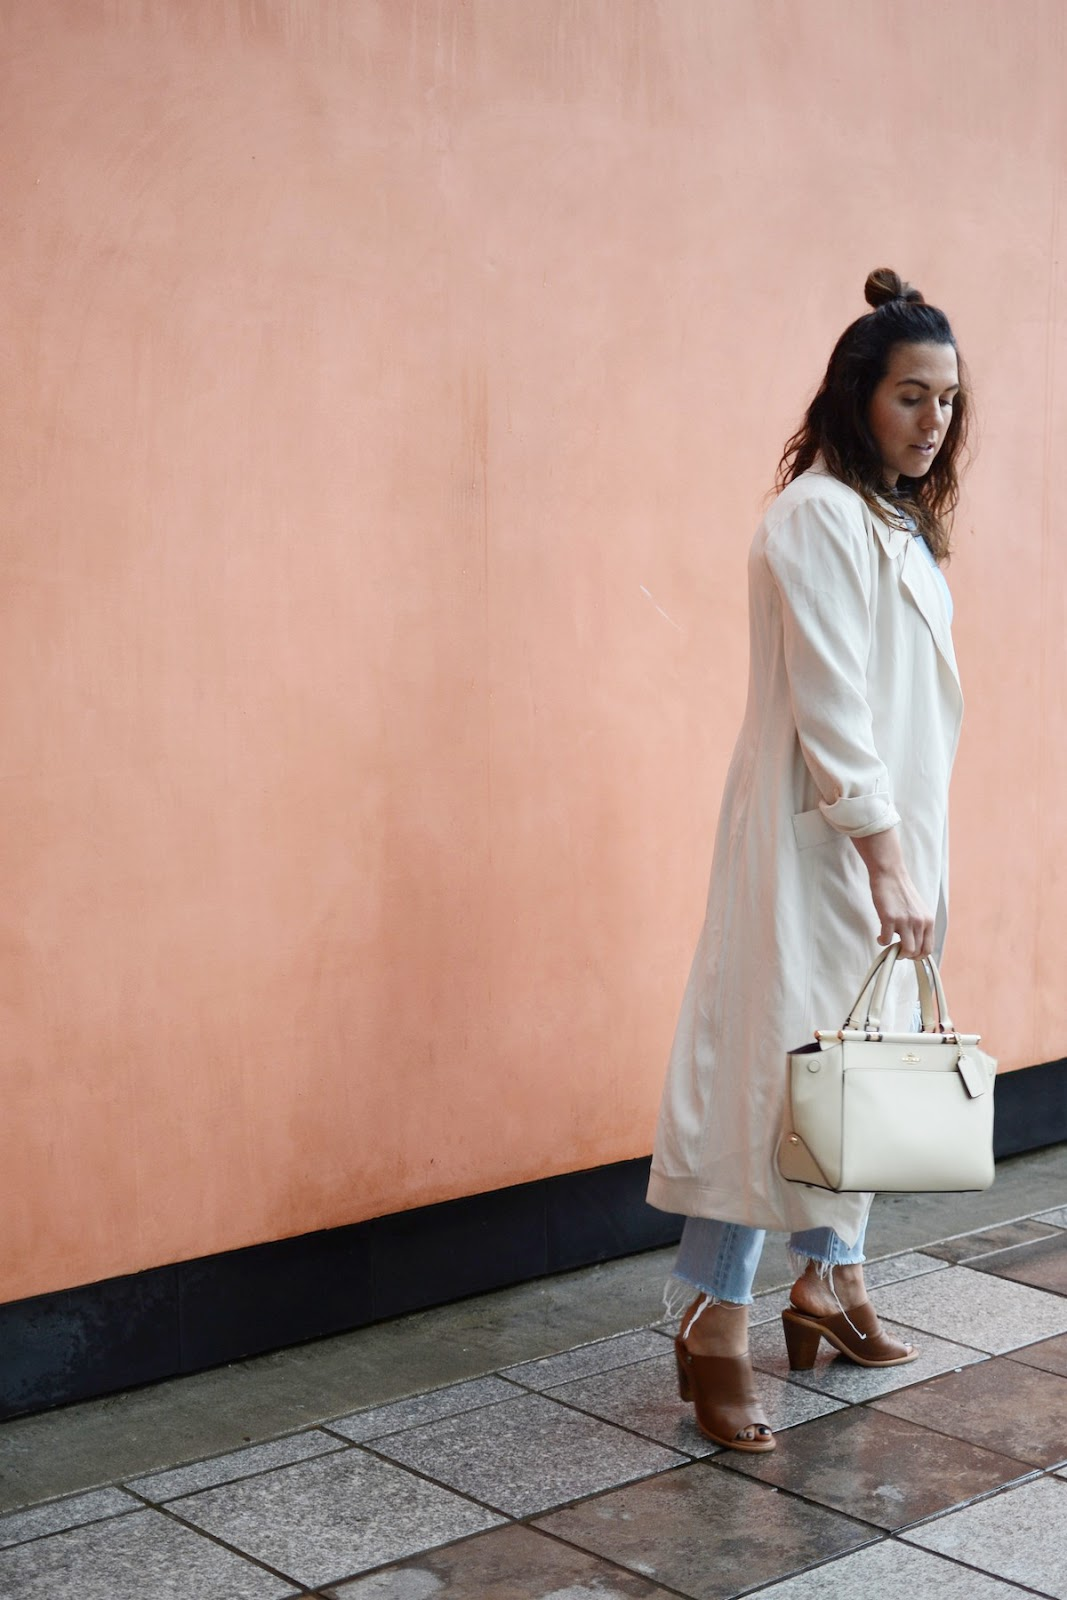 Coach Selena bag cream bag outfit vancouver fashion blogger Aritzia Kahlo jacket levi's wedgie jeans outfit